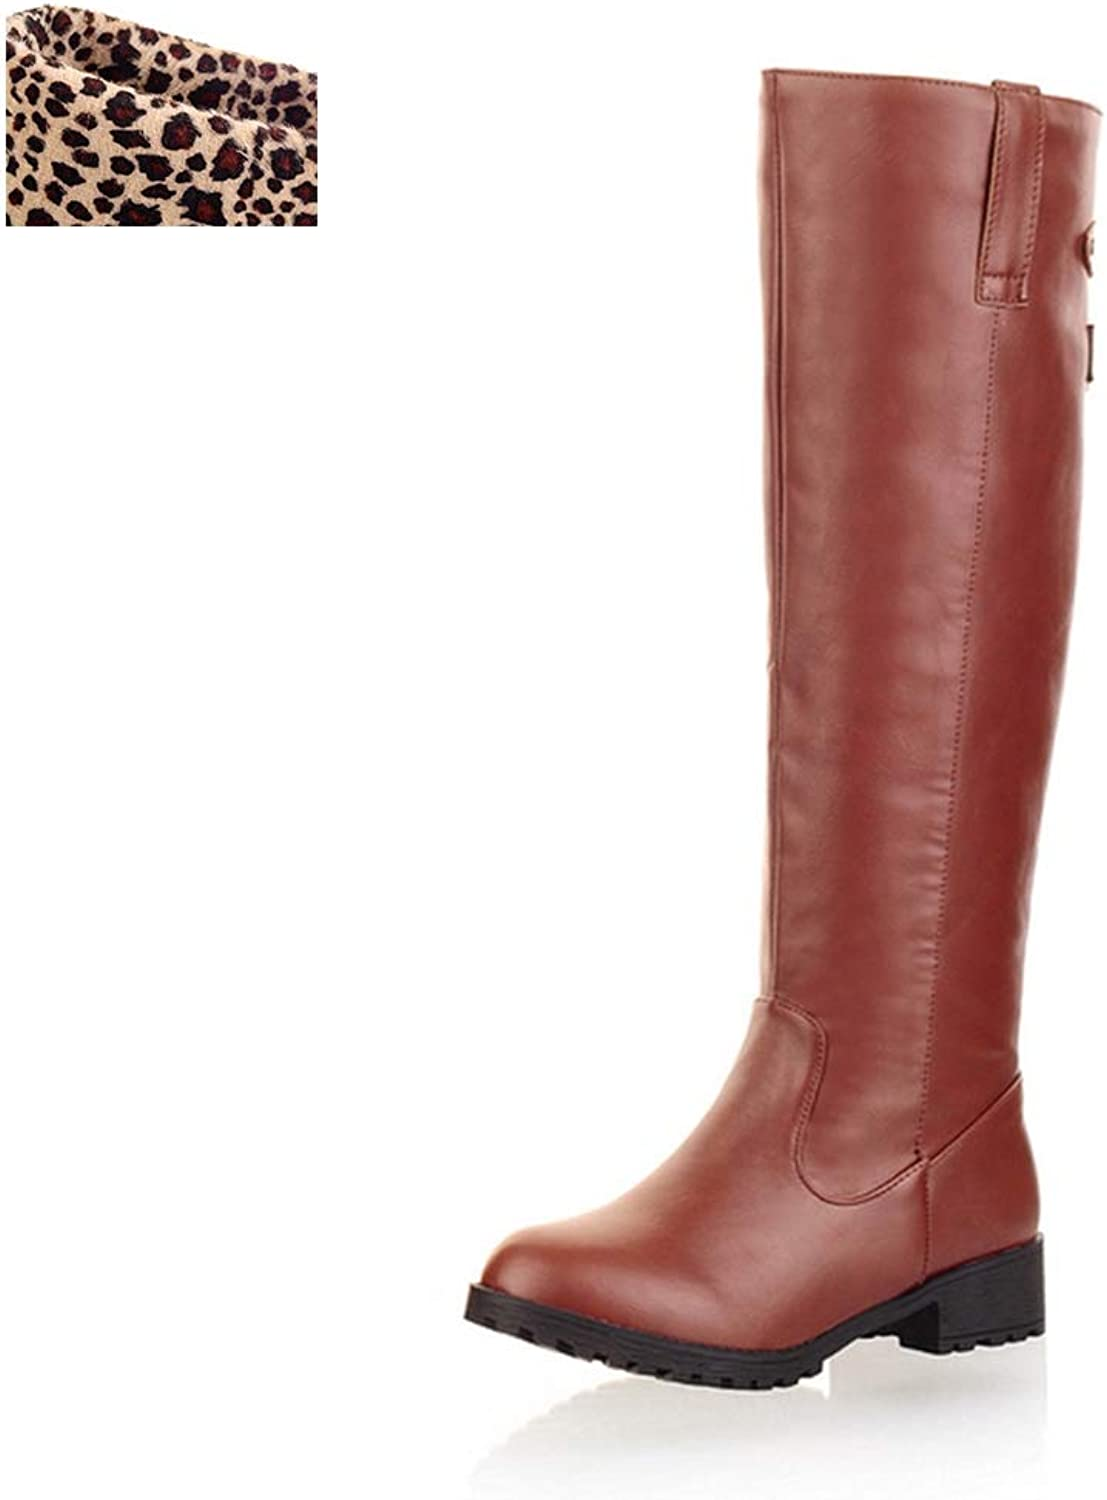 T-JULY Women's Add Fur Warm Knee-High Autumn Winter Riding Boots Fashion Comfortable shoes Large Sizes 34-44